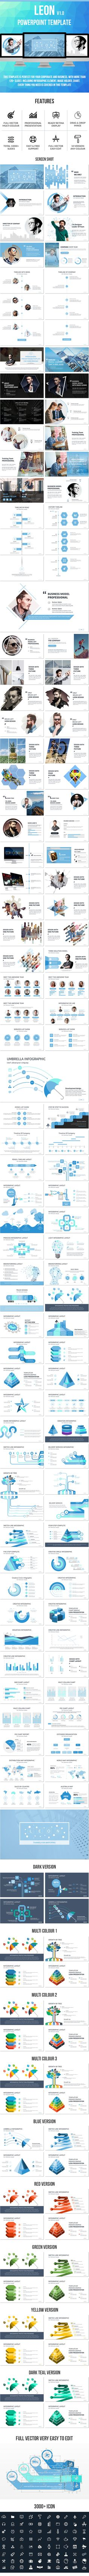 You can download marketing plan free powerpoint template for free compatible versions all microsoft office and andoid os office 2003 2007 2010 2013 toneelgroepblik Gallery